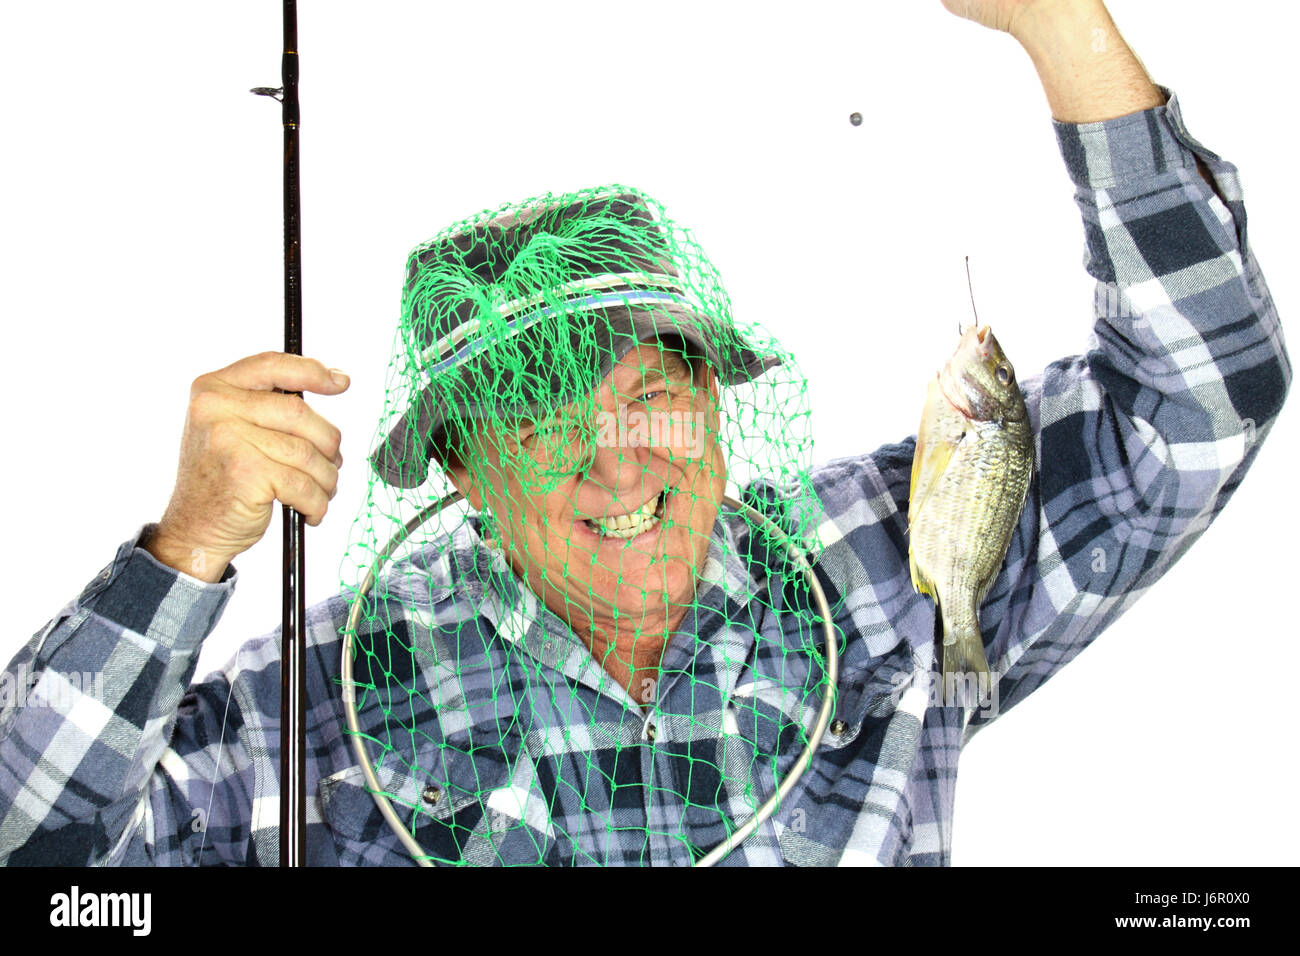 Image of: Funny Pictures Fish Net Fishing Silly Fisherman Accidental Random Angler Head Laugh Laughs Tenor Fish Net Fishing Silly Fisherman Accidental Random Angler Head Laugh